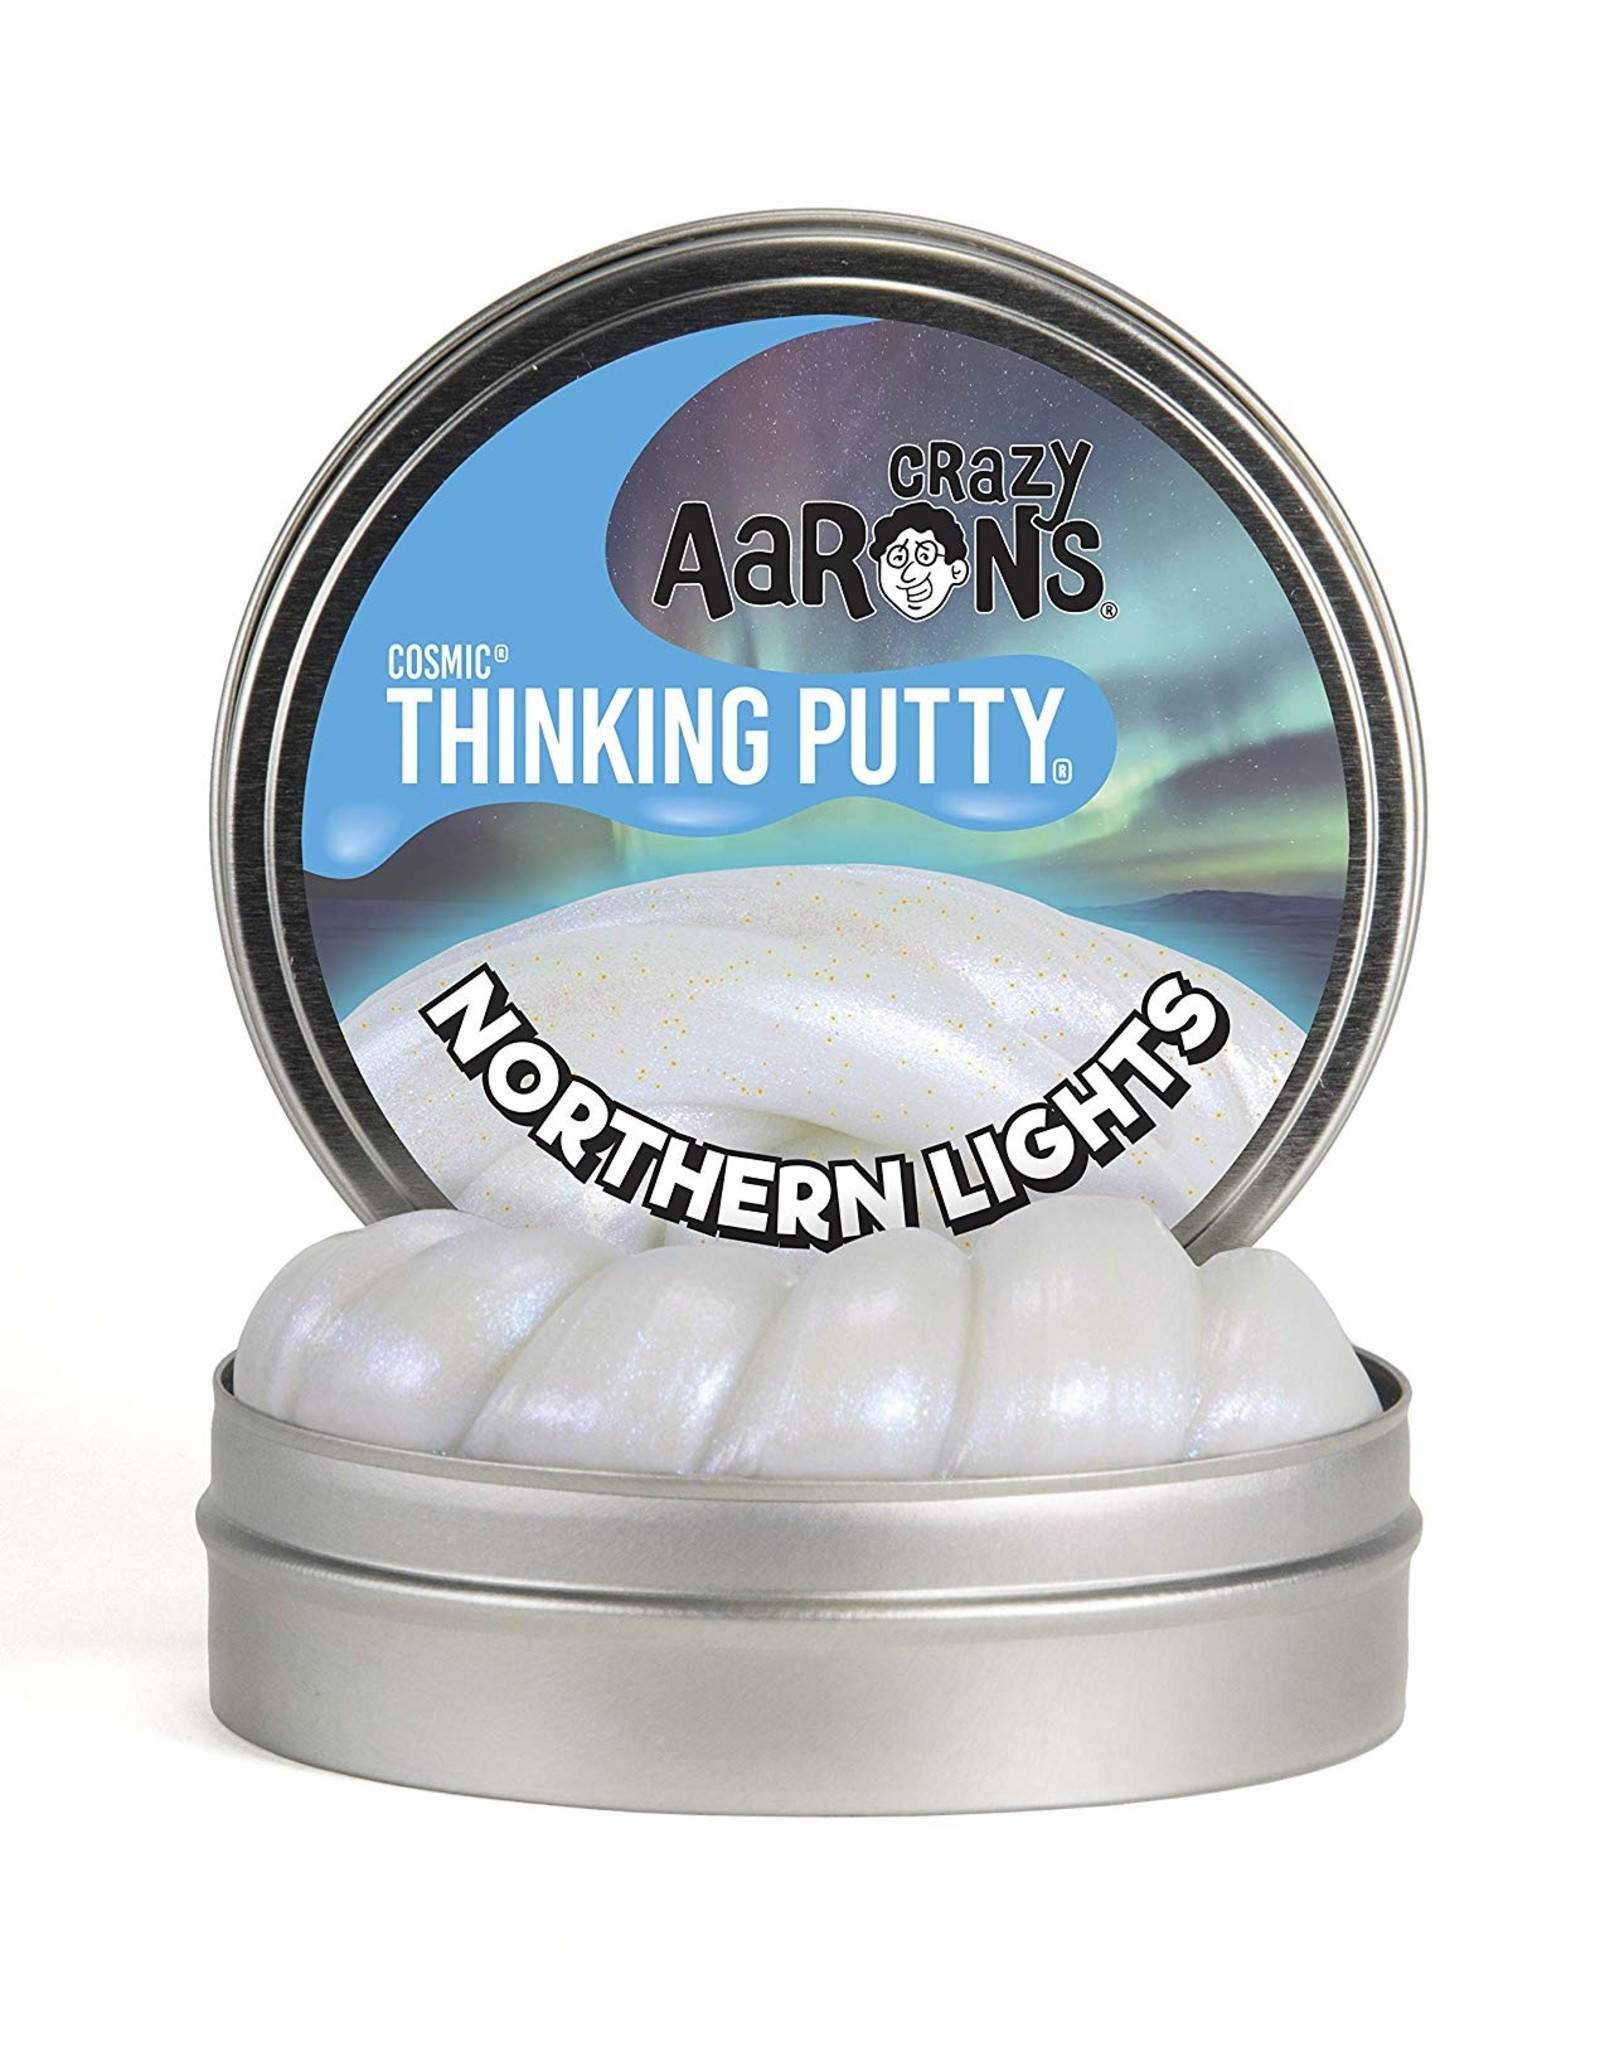 Crazy Aarons 3.2 oz - Northern Lights Thinking Putty